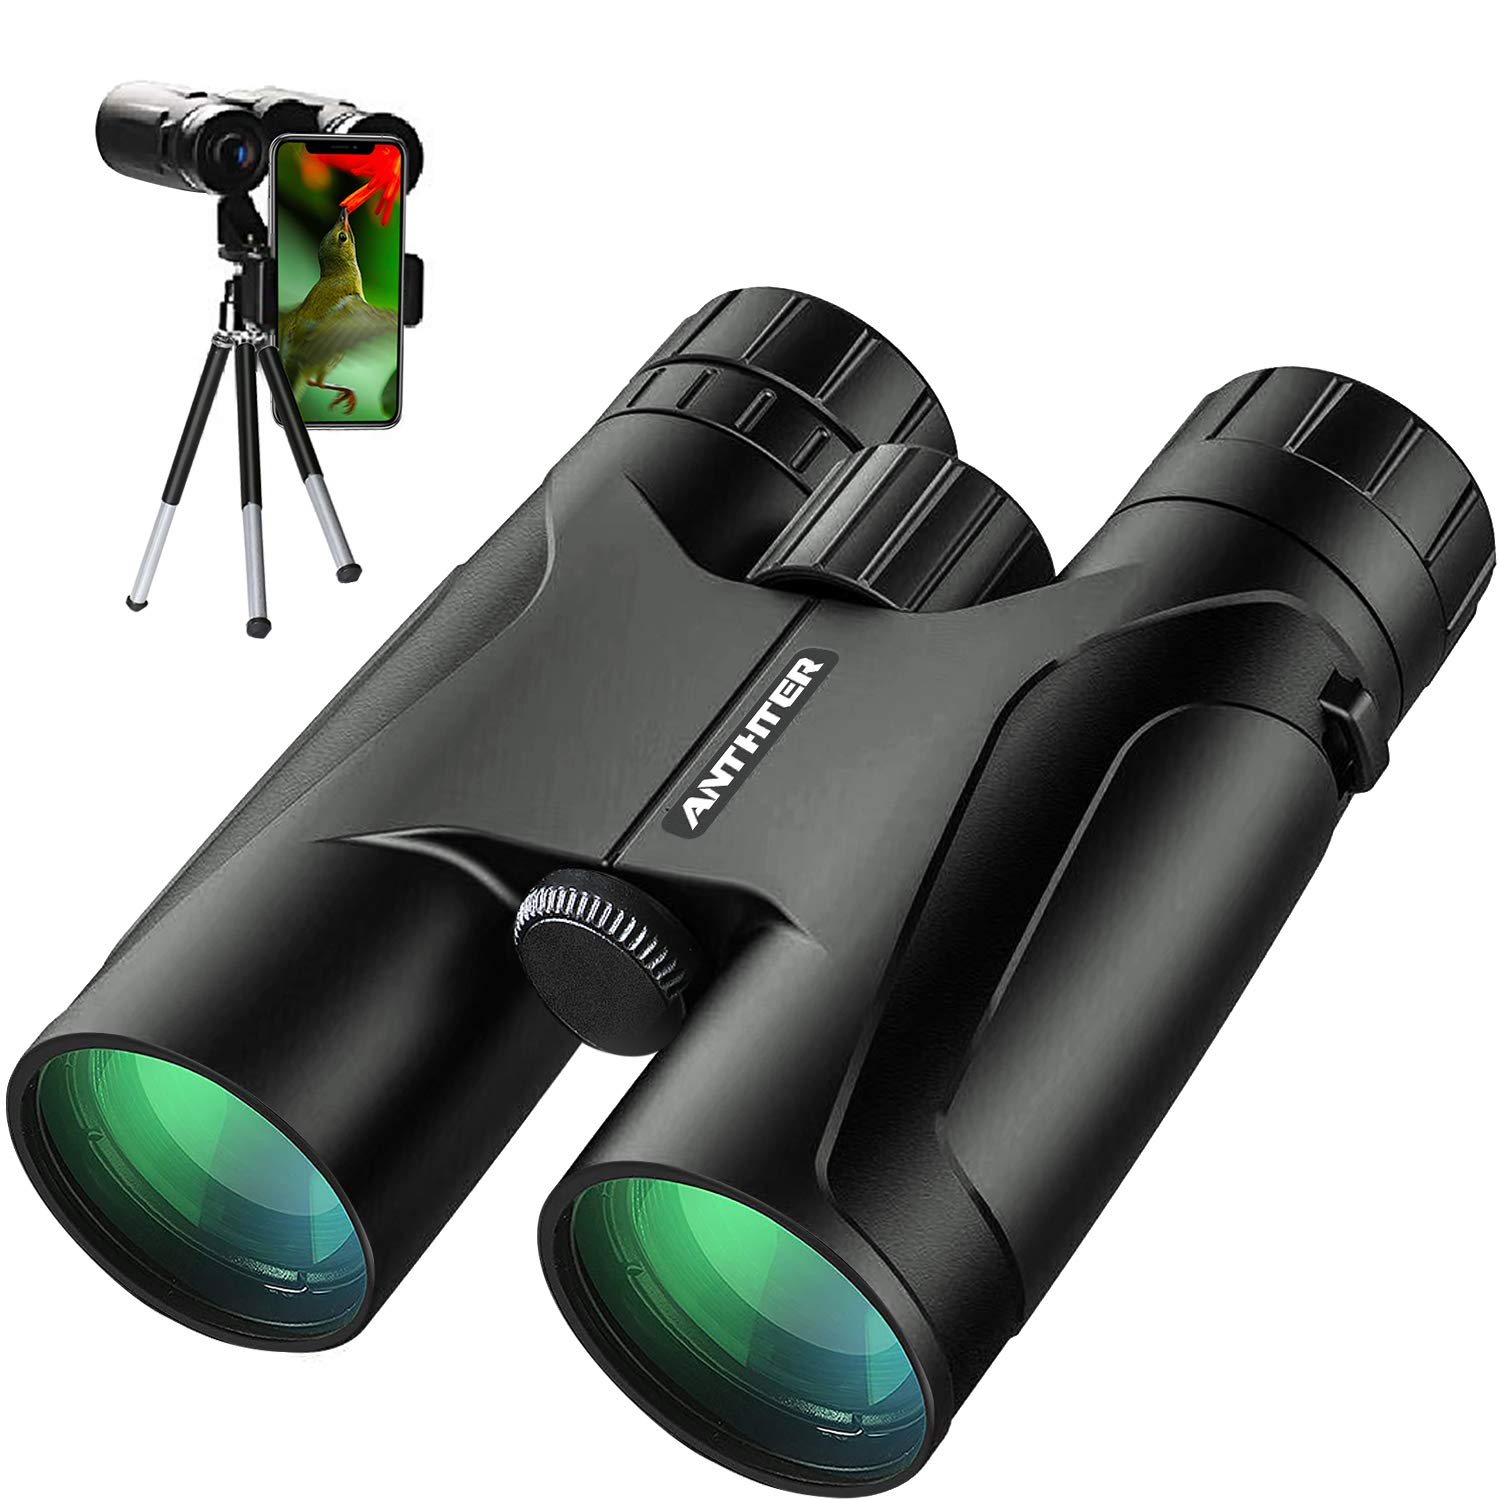 12X50 Powerful Binoculars, High Power HD Binocular for Adults with Smartphone Holder & Tripod, Waterproof Binoculars with Durable and Clear FMC BAK4 Prism Binoculars for Bird Watching, Camping, Hiking by Anthter